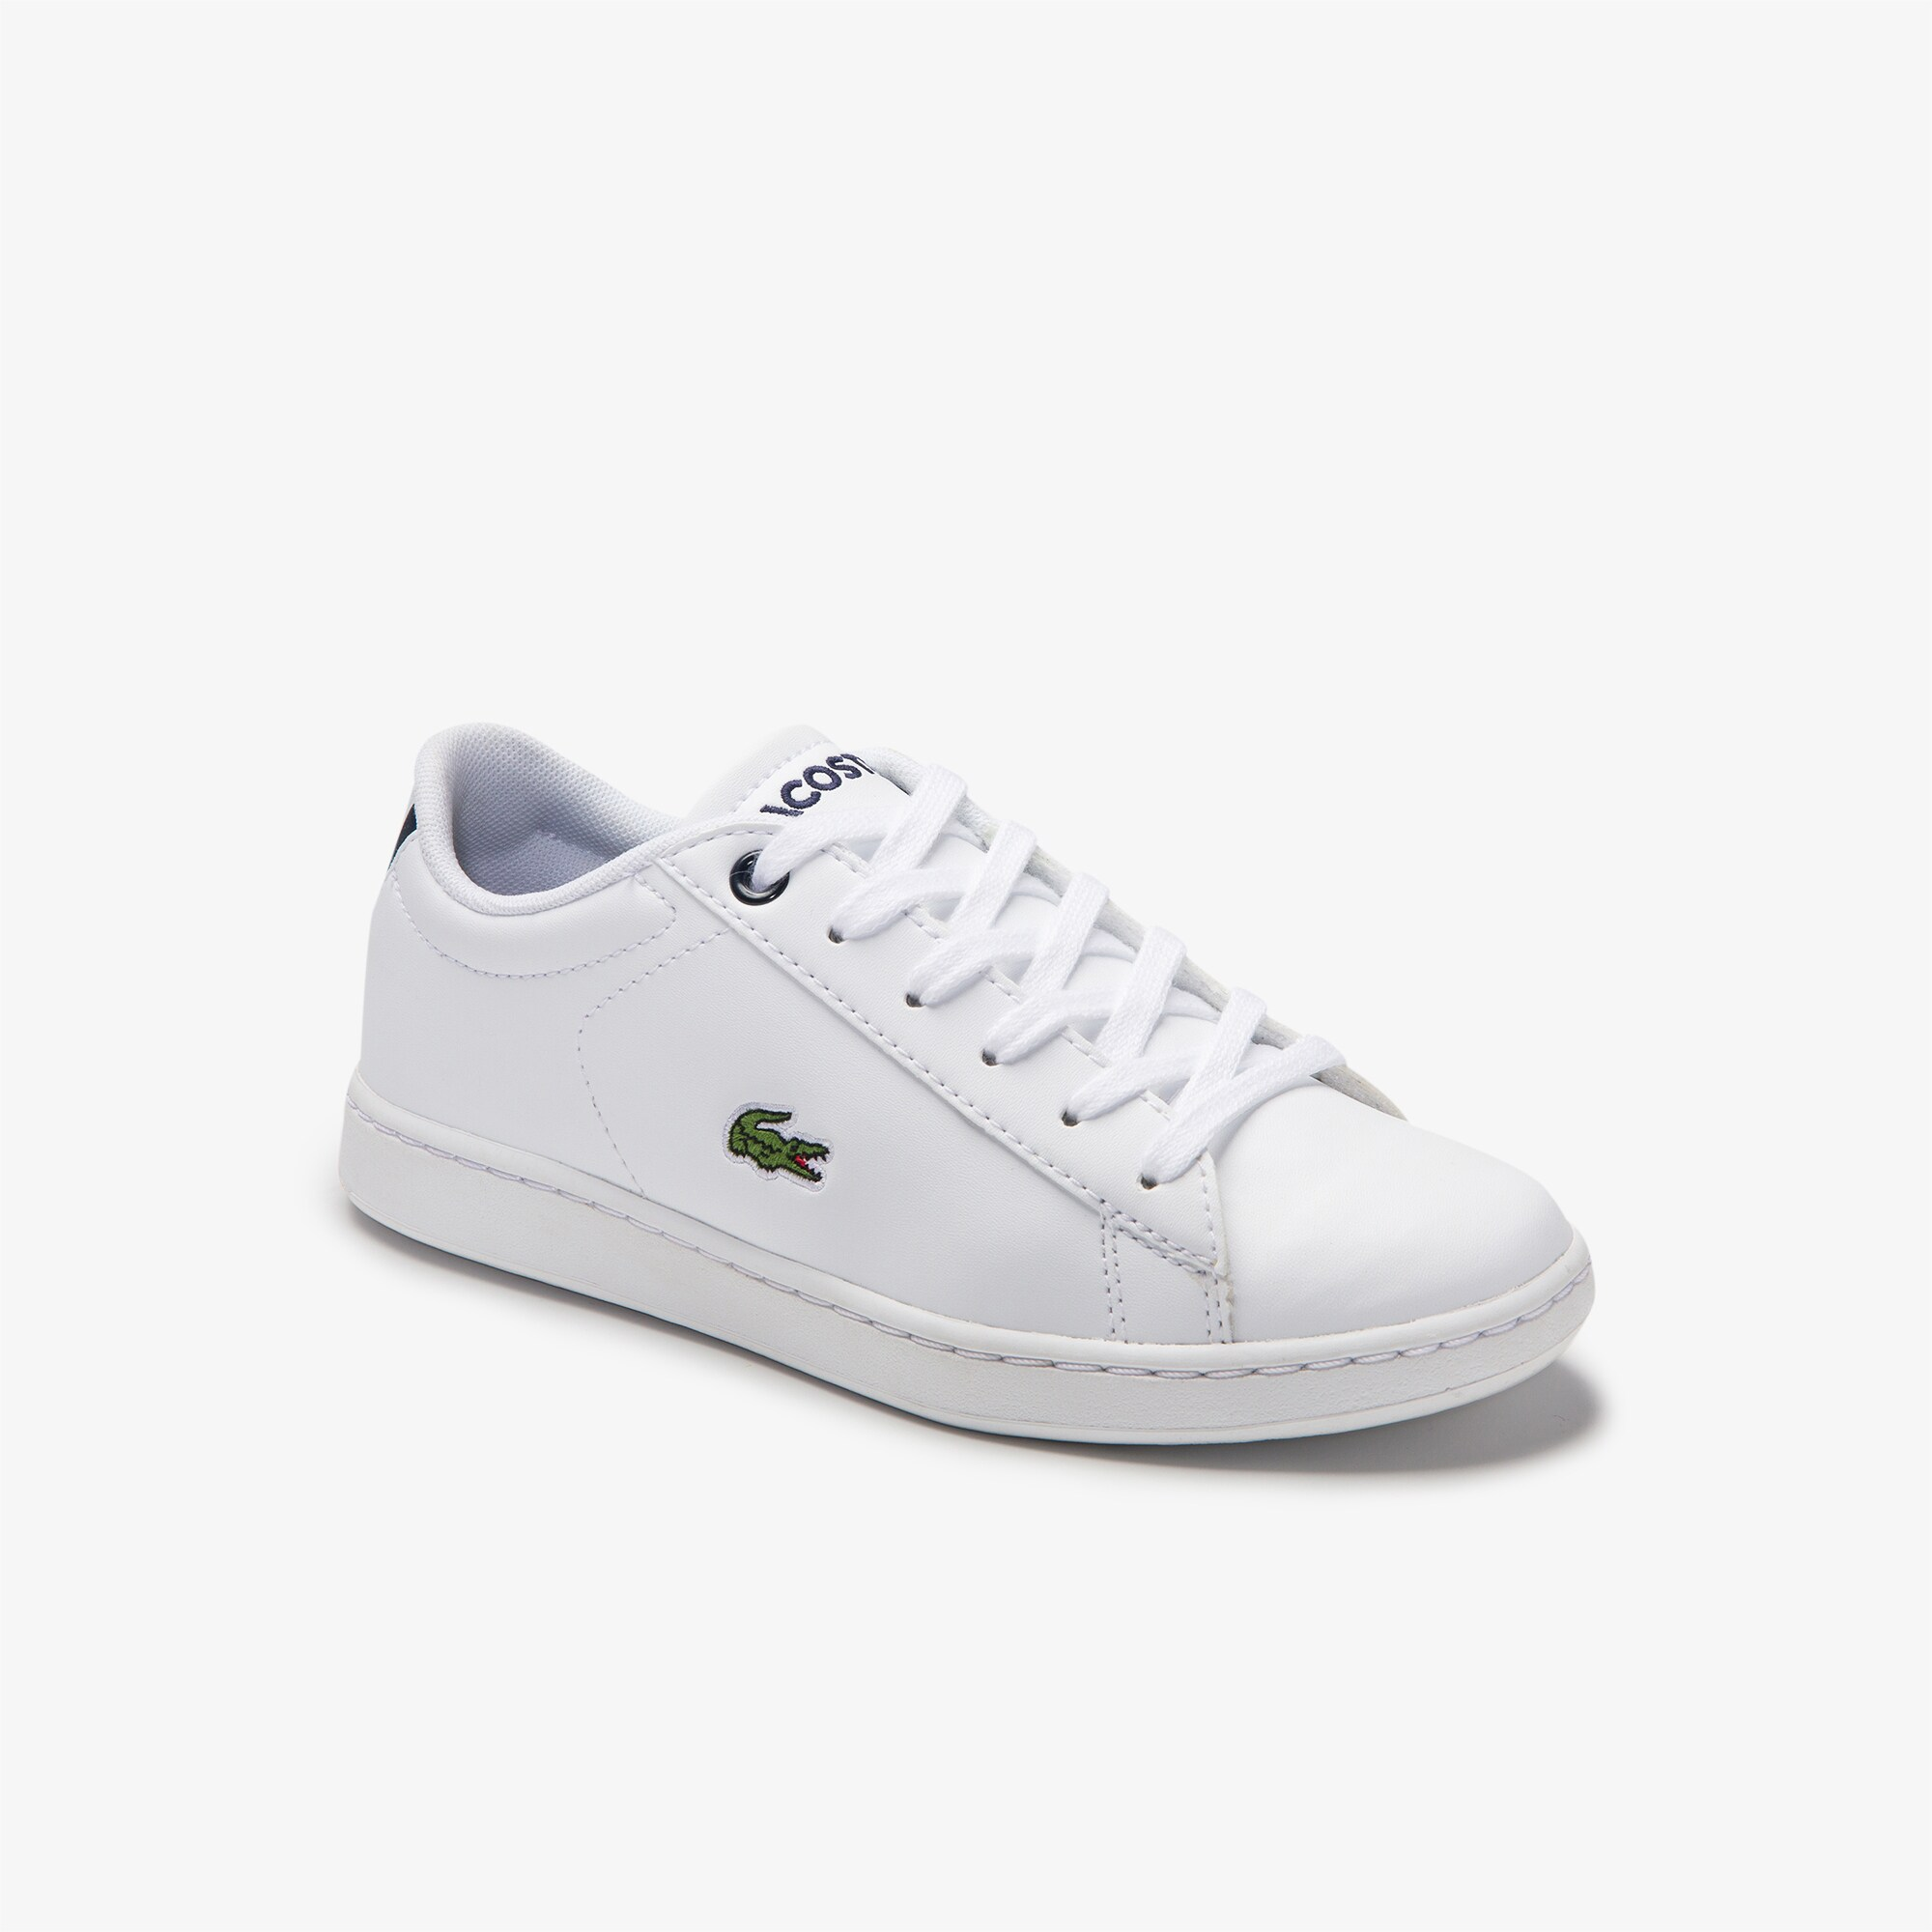 chaussures fille chaussures enfant lacoste. Black Bedroom Furniture Sets. Home Design Ideas